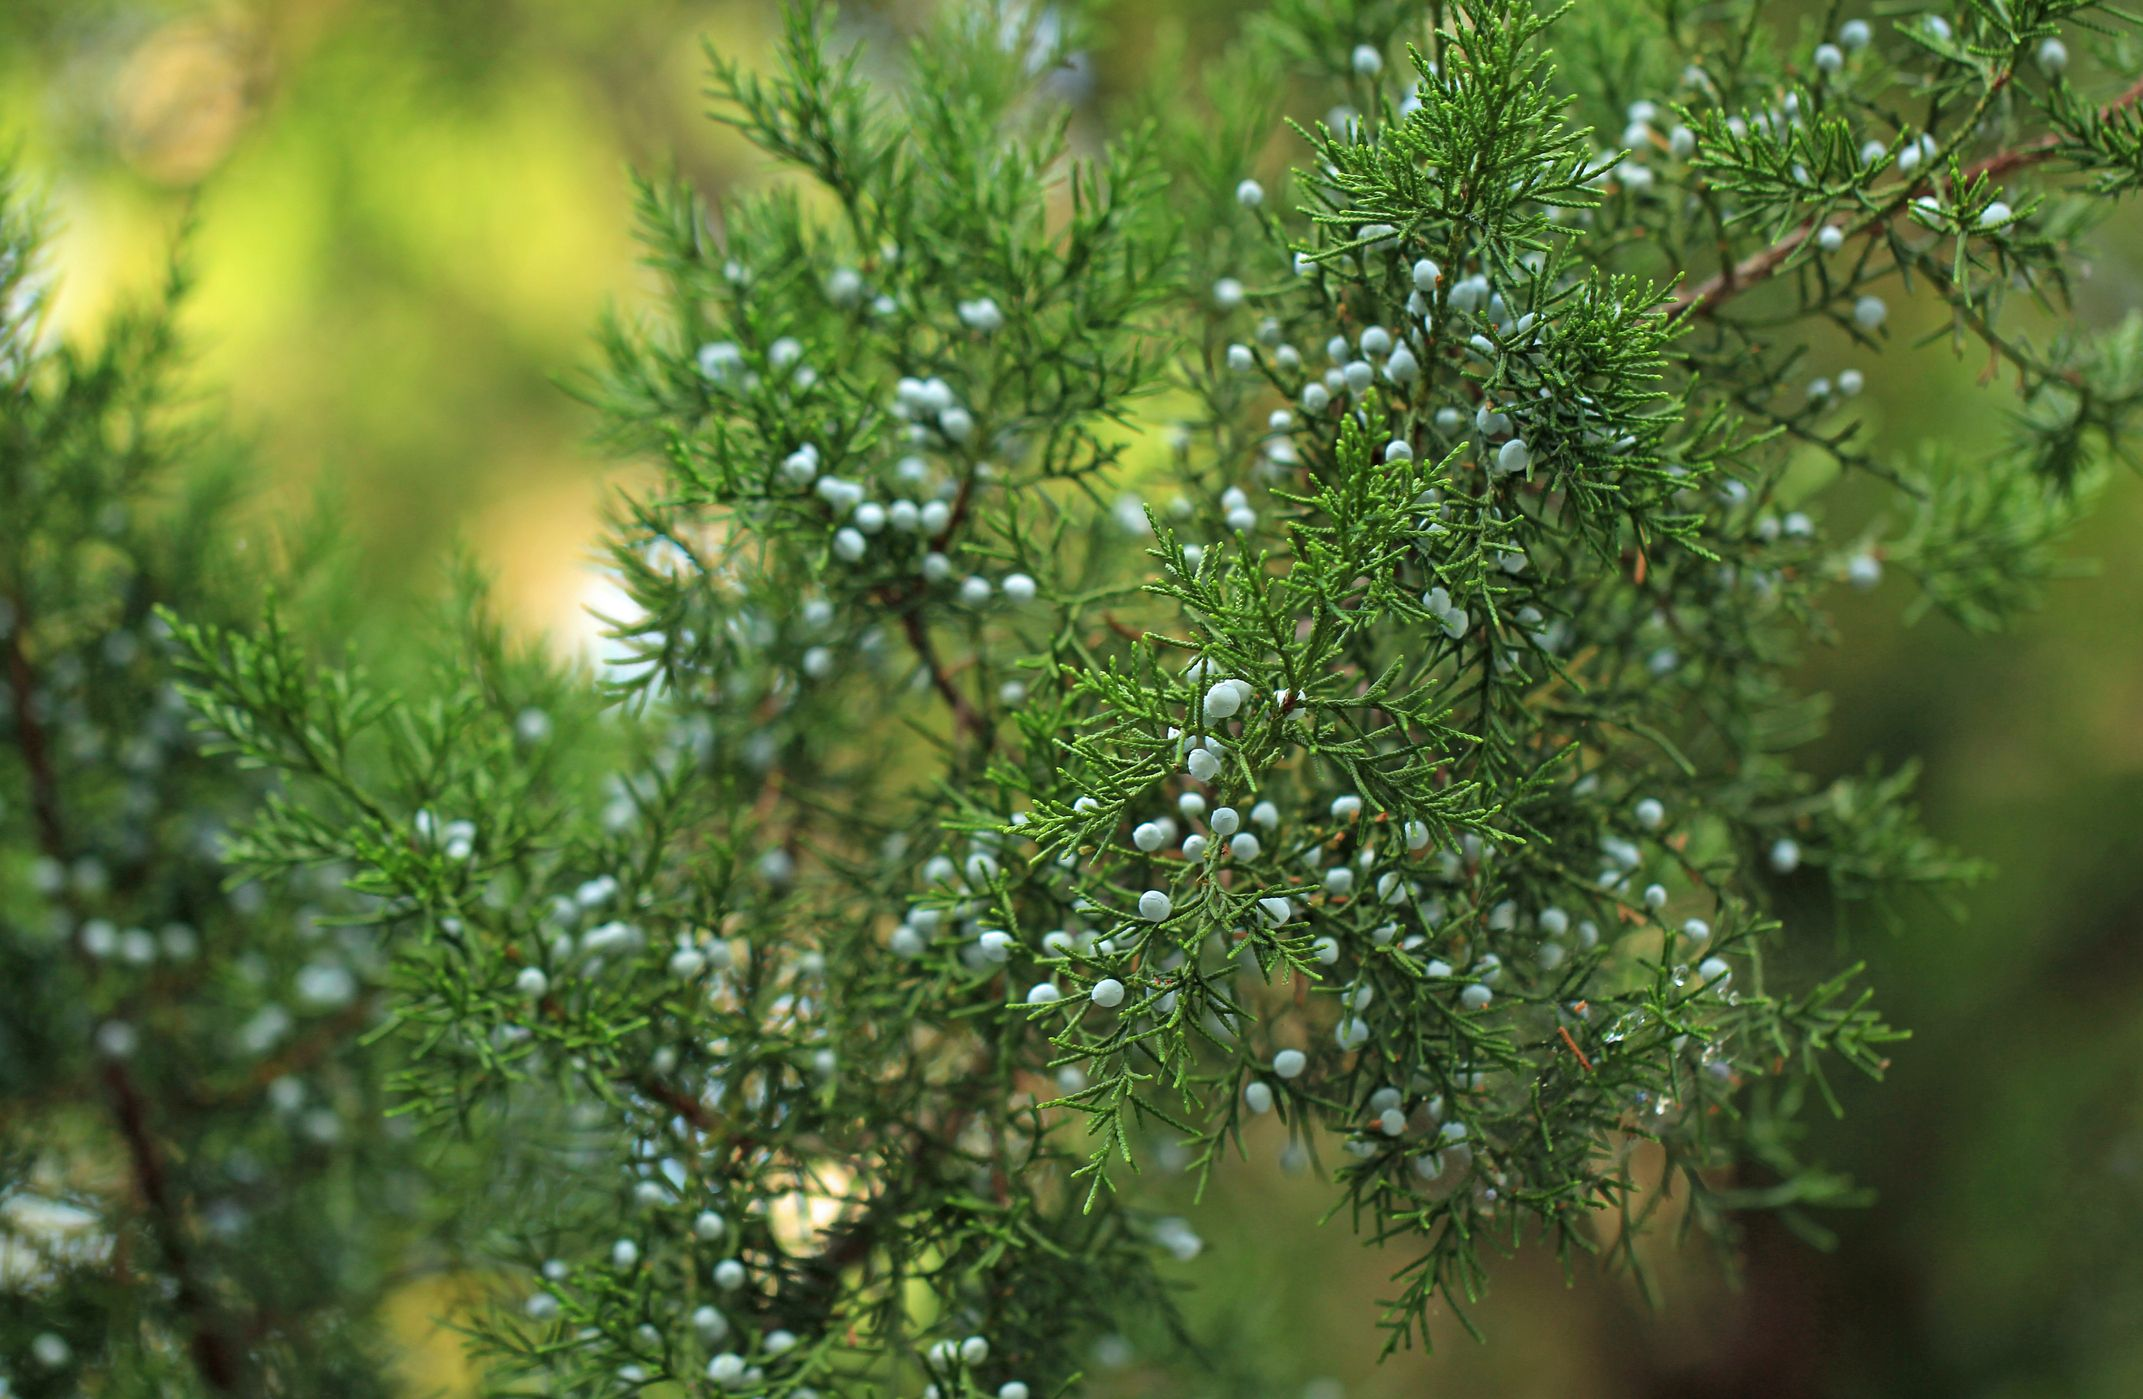 Good news for gin-lovers as juniper plant numbers are on the rise in the UK